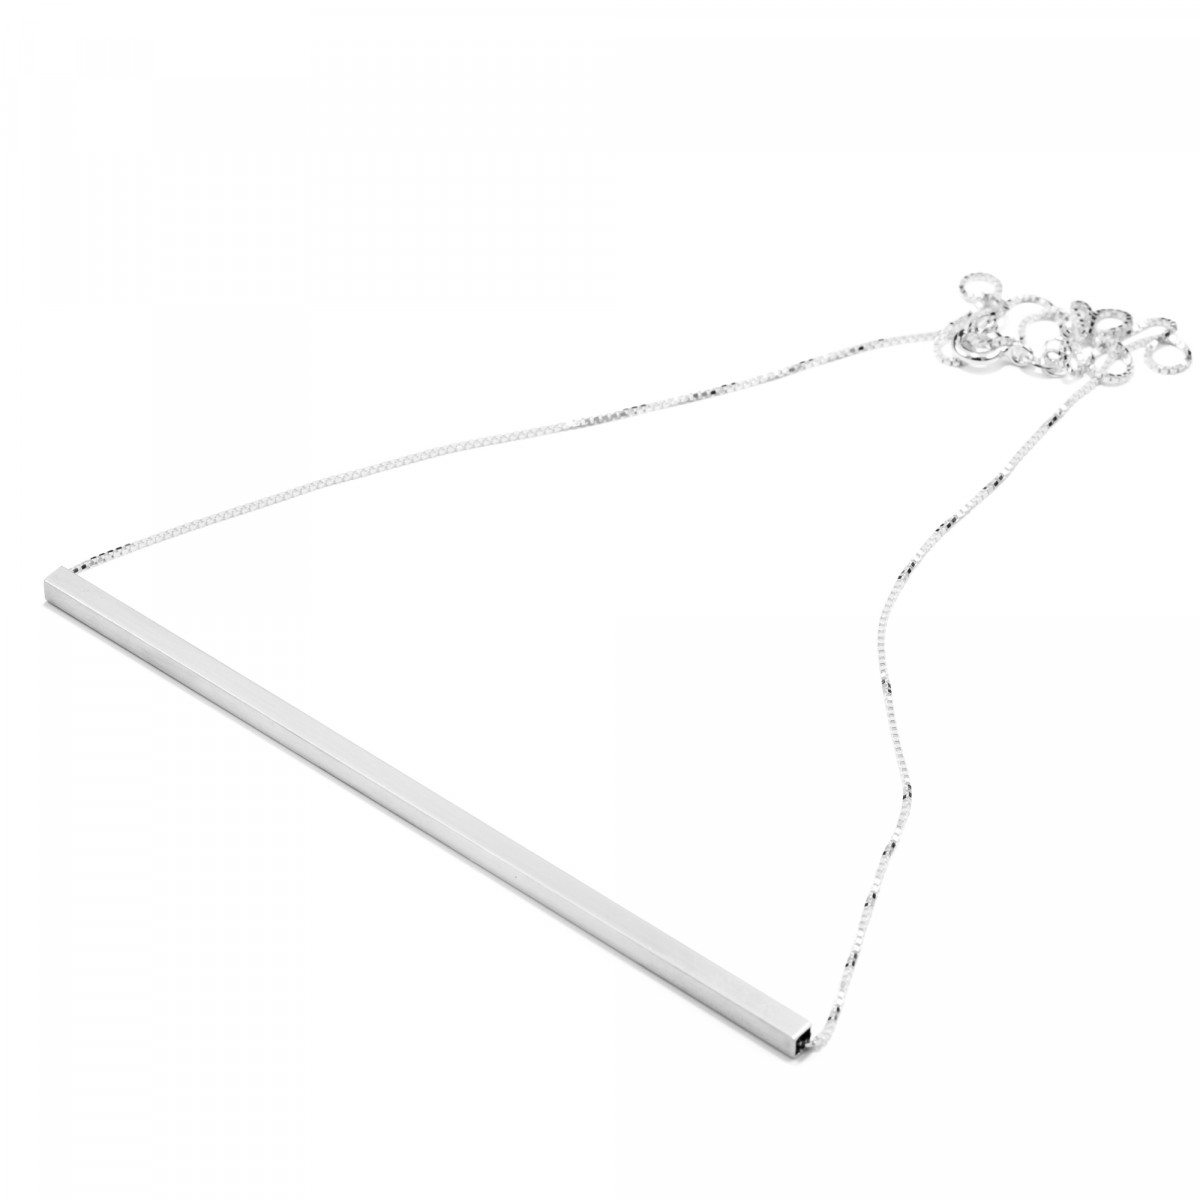 Jonathan Radetz Jewellery, Kette SQUARE, Silber 925, Sterlingsilber, Handmade in Germany